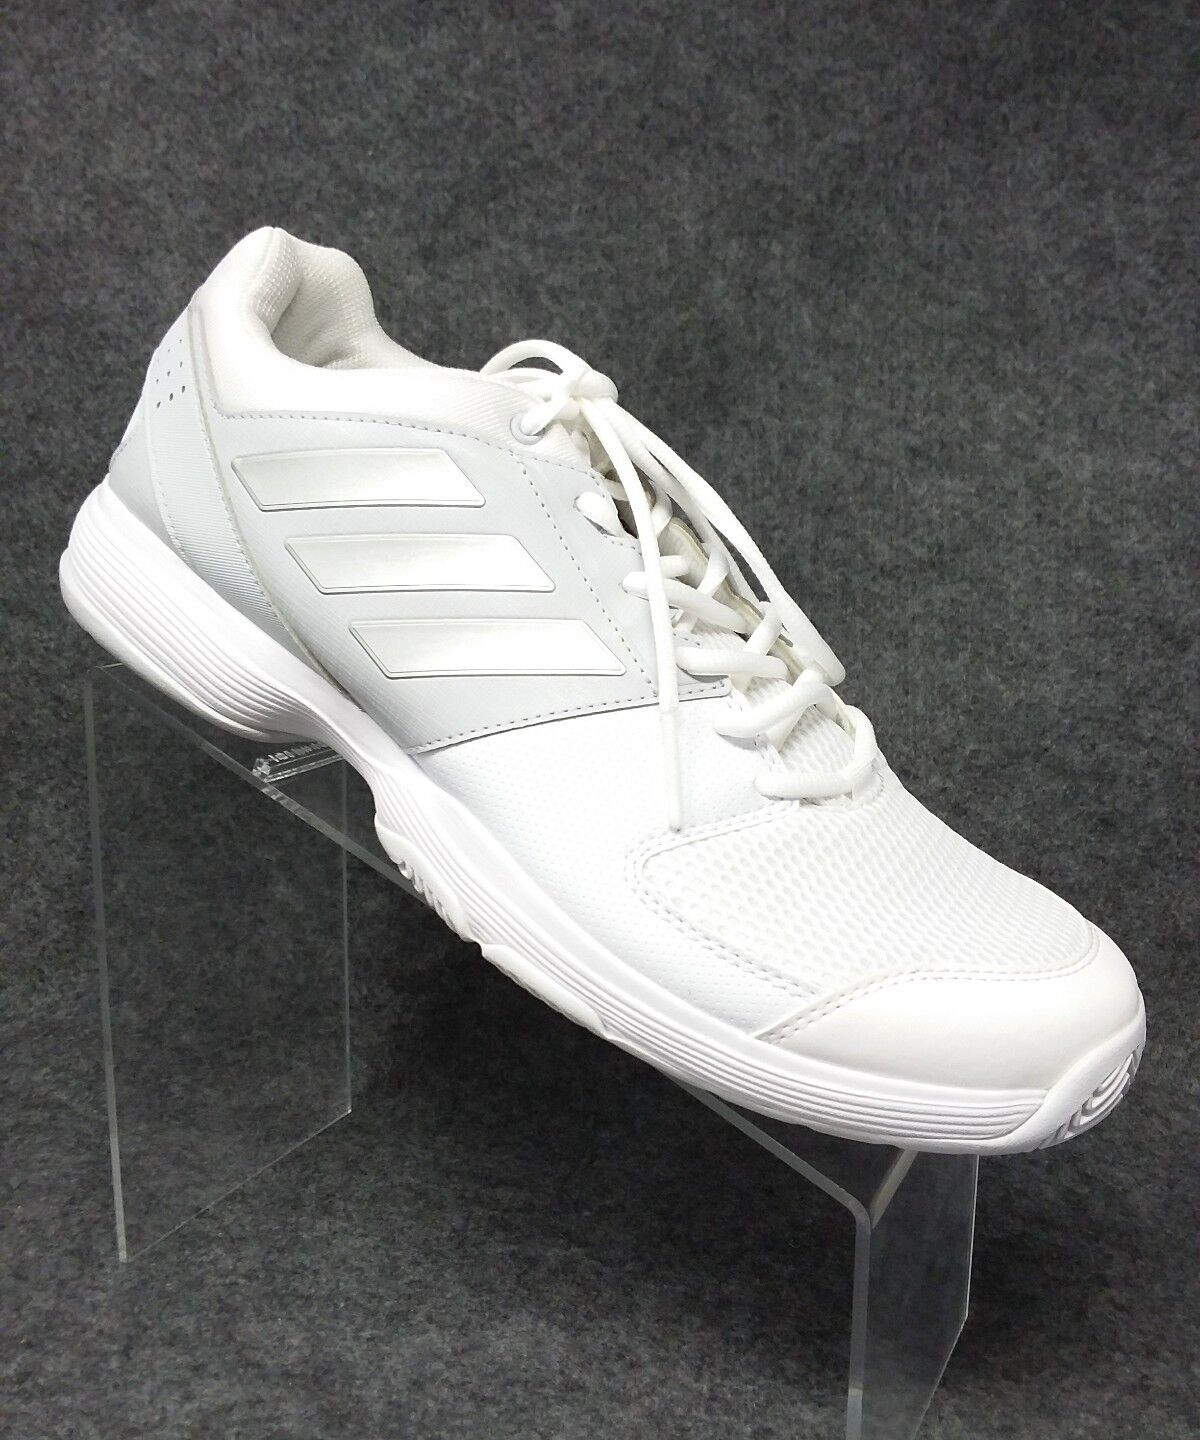 Adidas NEW Men's White Silver Tennis shoes Sneakers Size 11.5 Walking Training